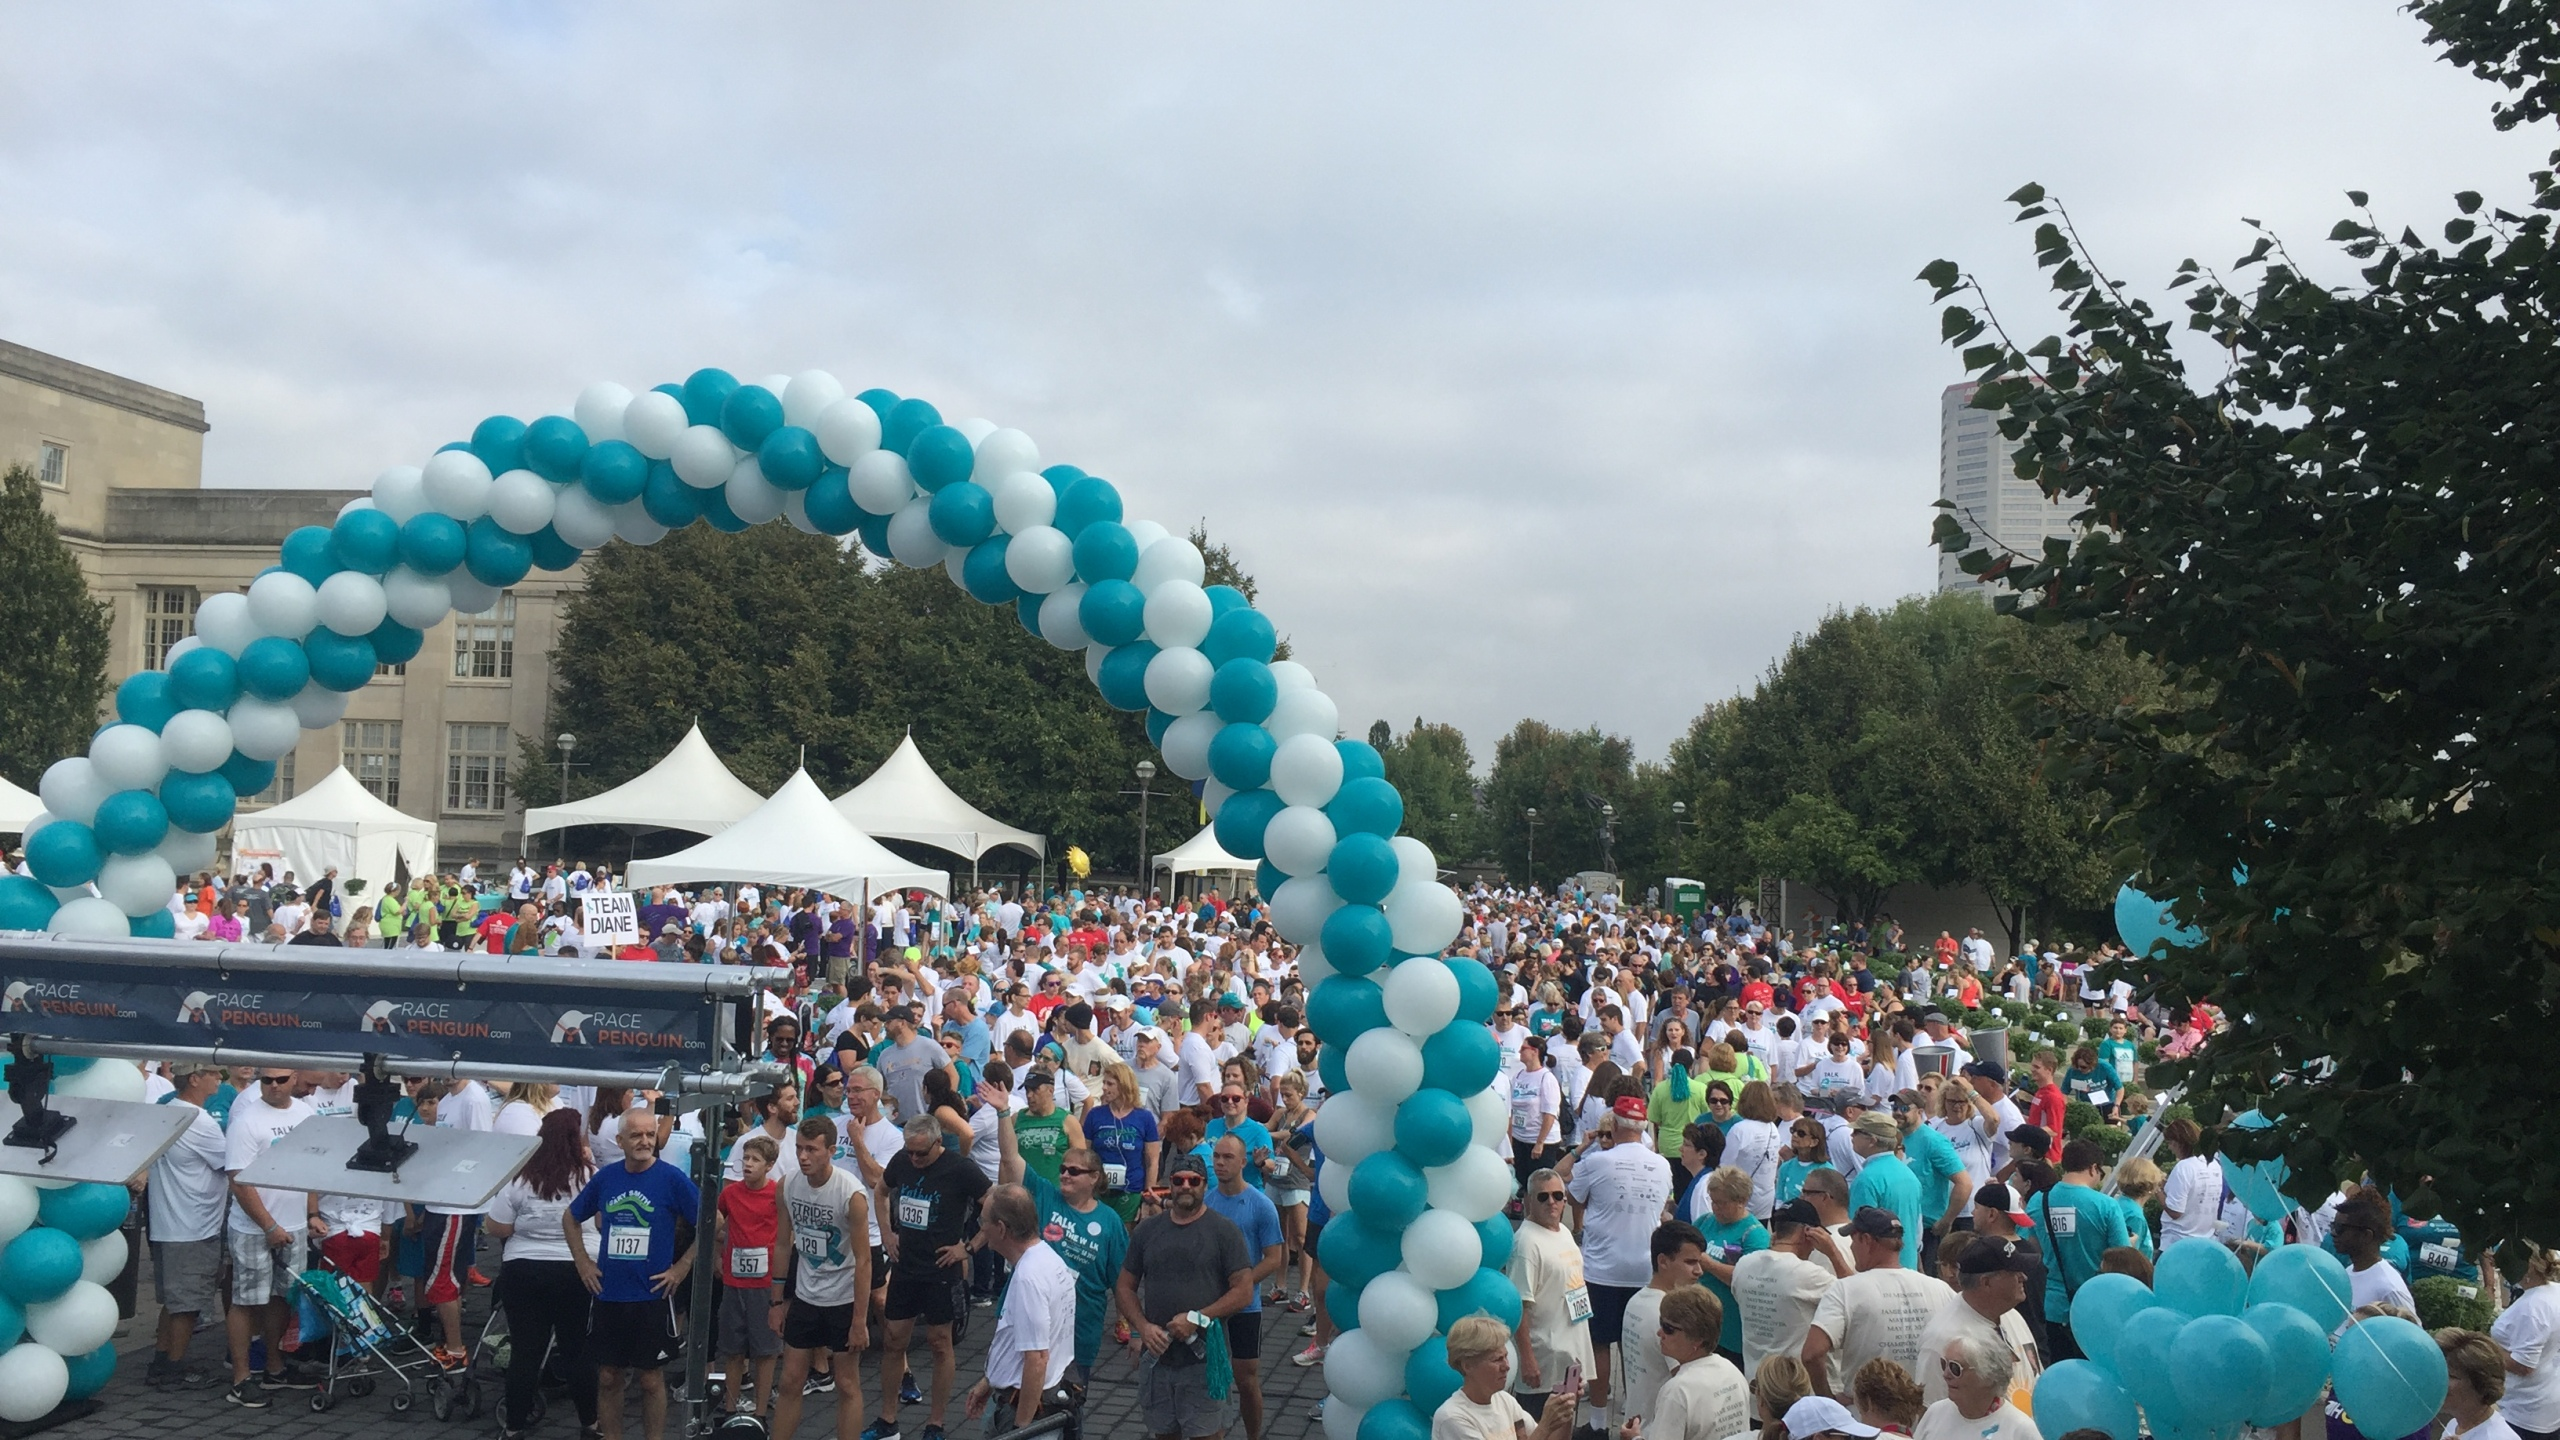 Strides For Hope Brings Thousands Out To Fight Ovarian Cancer